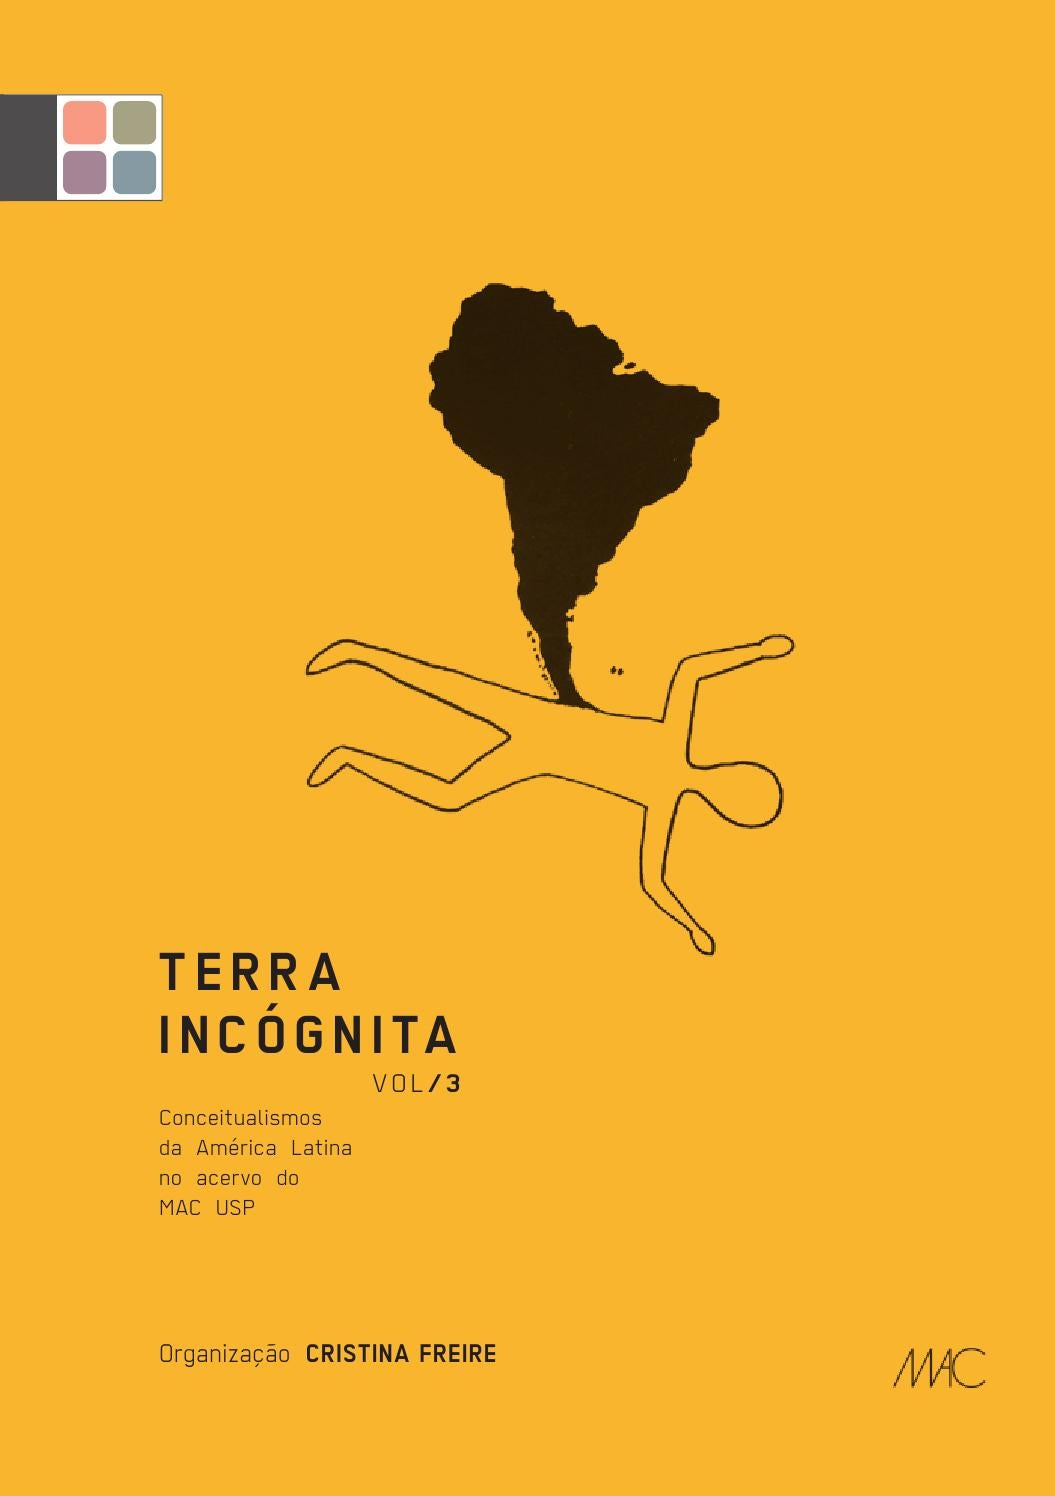 Terra Incognita volume 03 by Geacc Mac - issuu